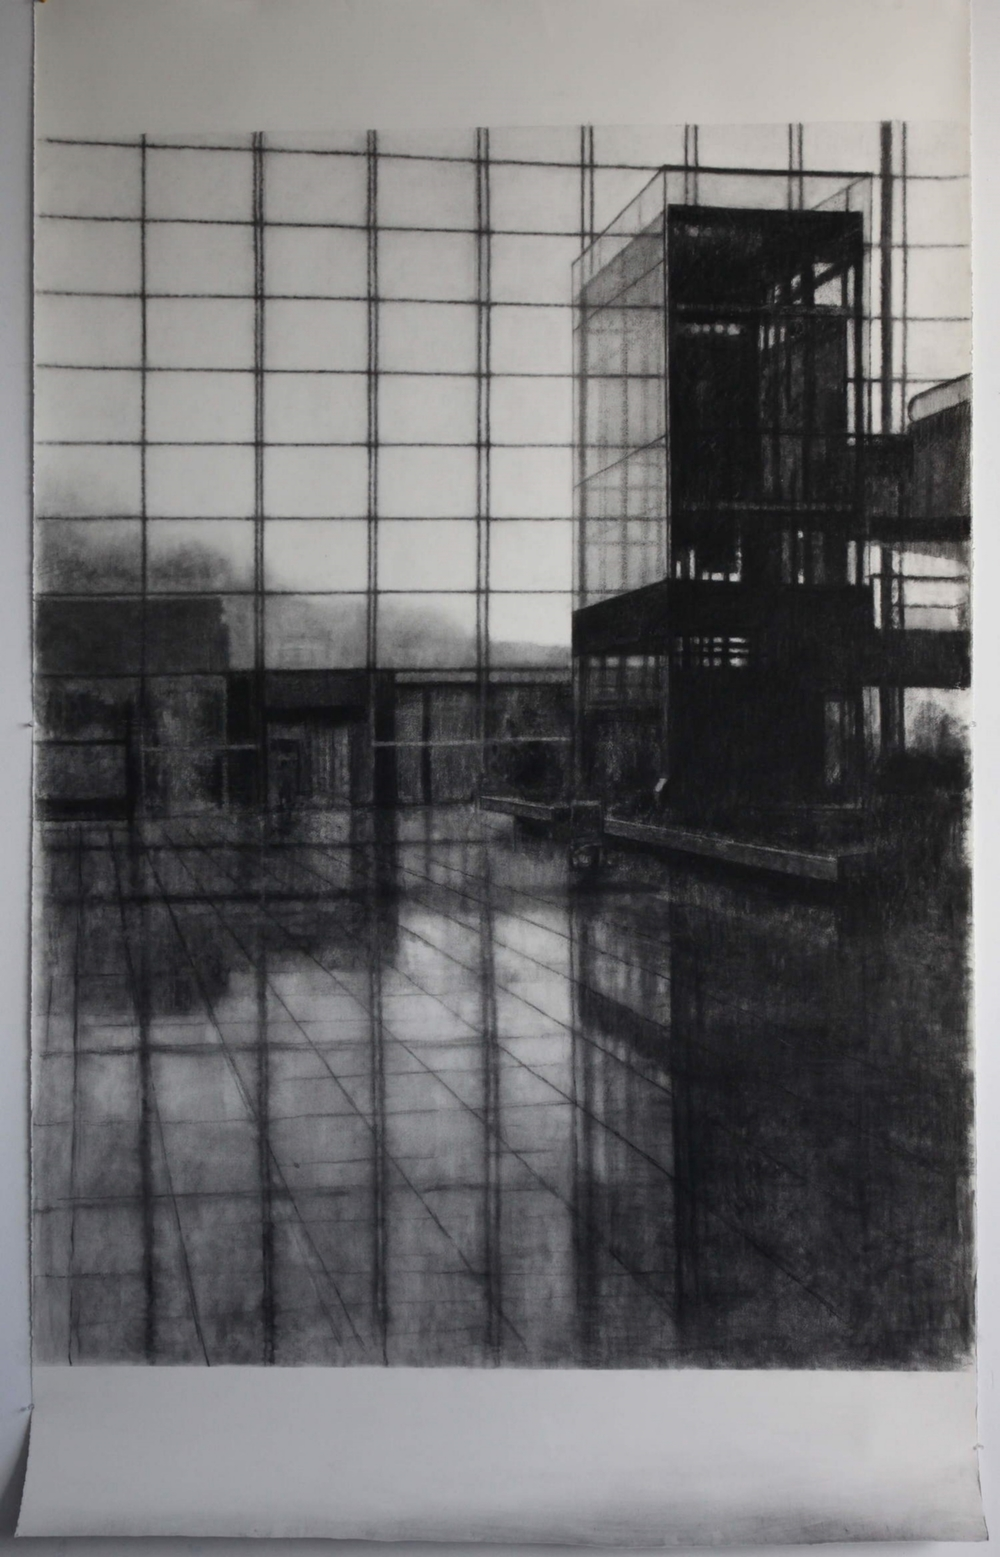 Drawing 316 (Chet Lap Kok), Charcoal on Fabriano paper, 240x140cm.